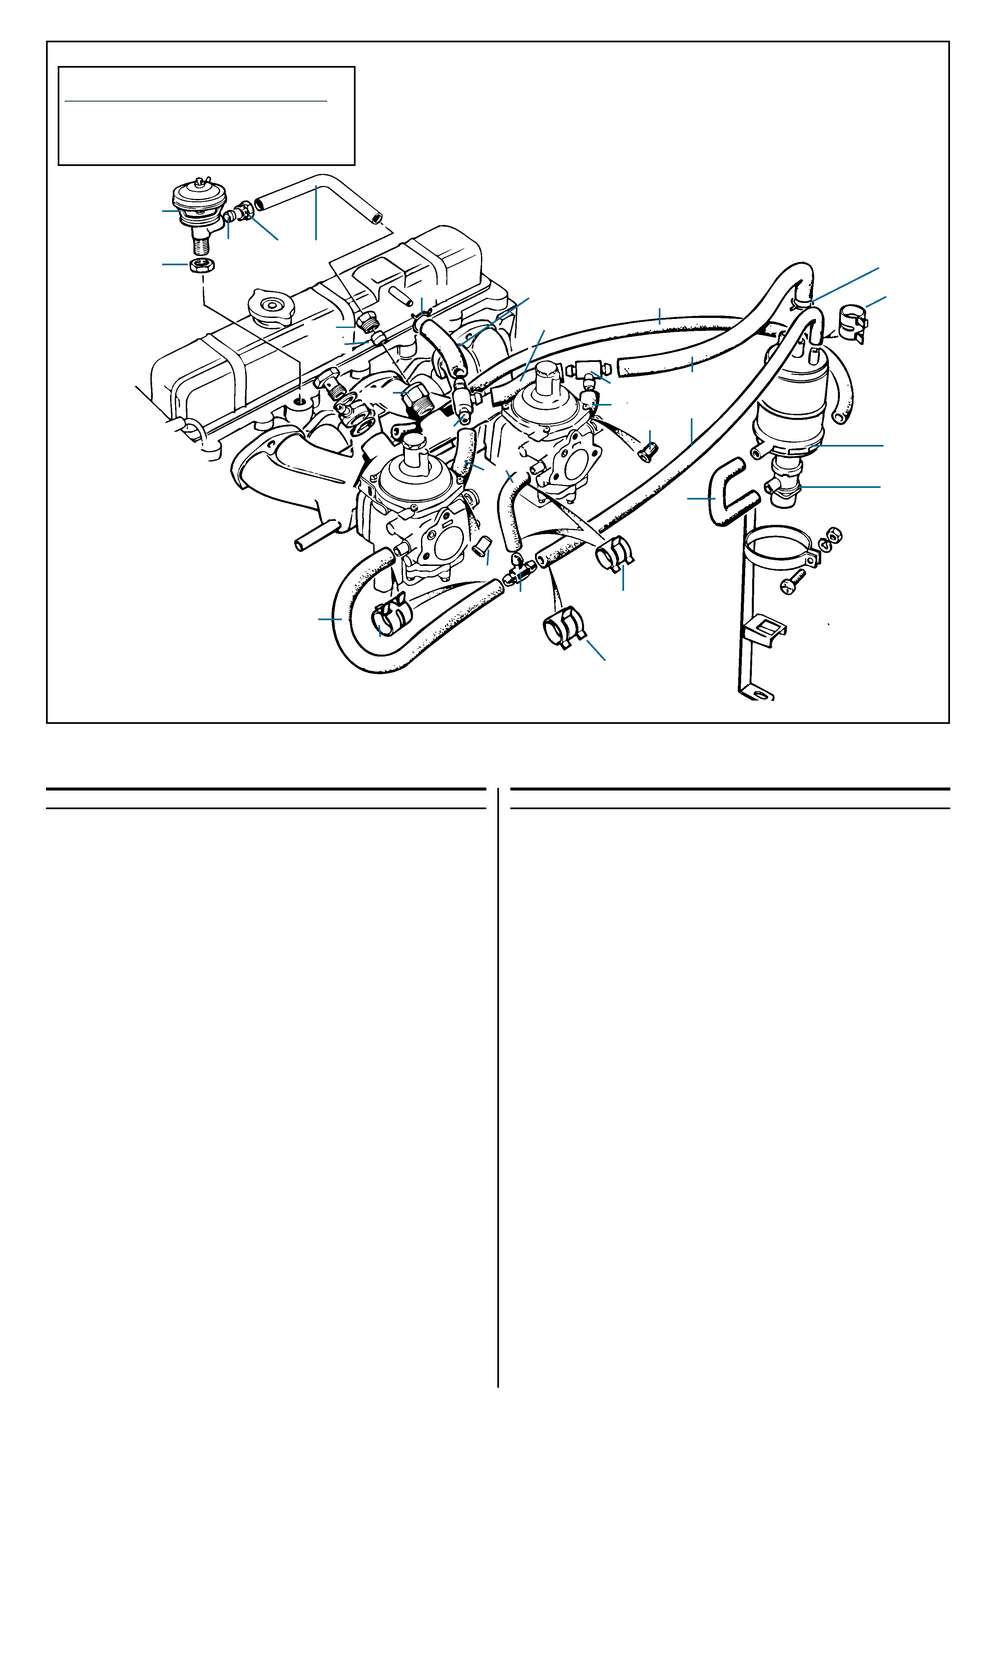 Roadster Factory Tr6 Assembly Manual Volume 1 Page 49 1974 Wiring Diagram